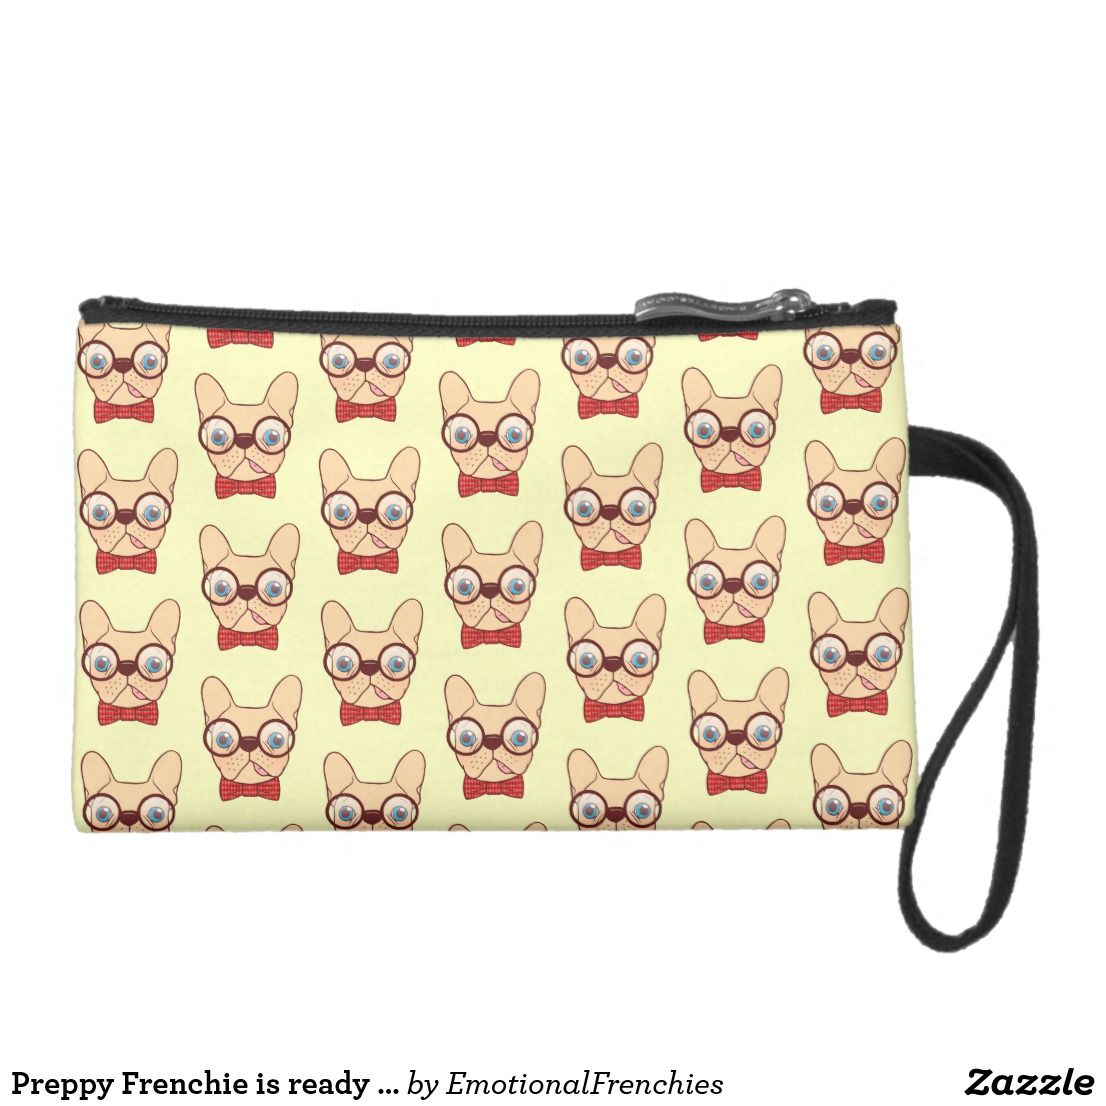 c0290826fffa Preppy Frenchie is ready for school in new bow tie Suede Wristlet ...